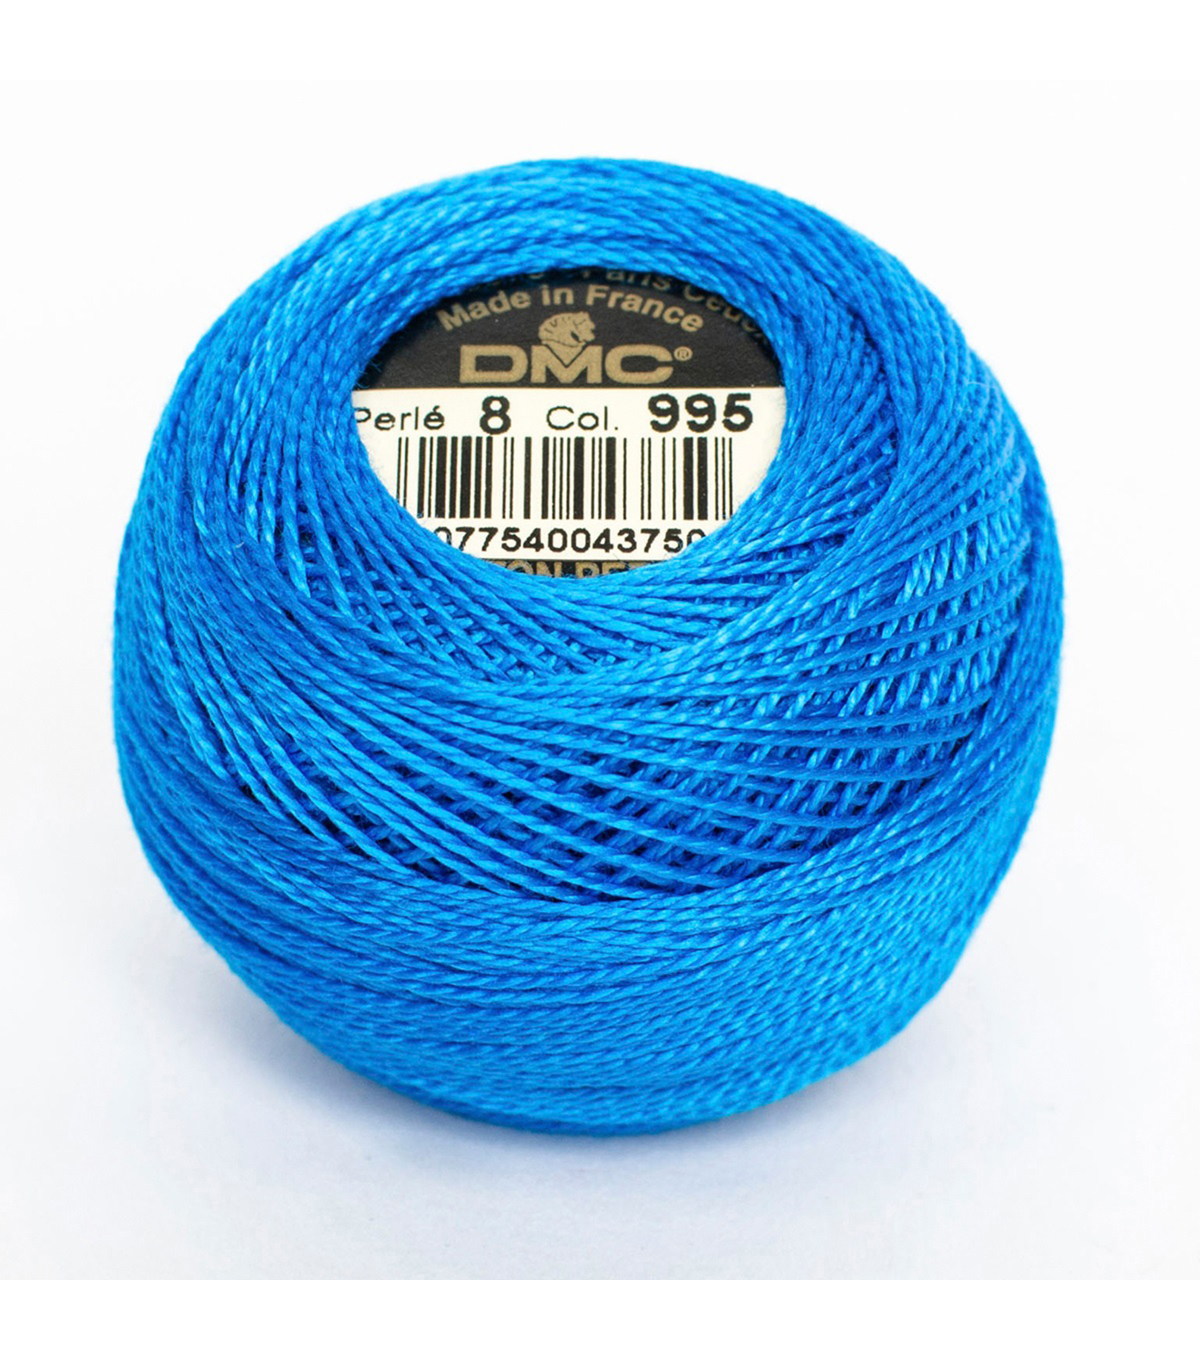 DMC Pearl Cotton Balls Thread 87 Yds Size 8, Dark Electric Blue